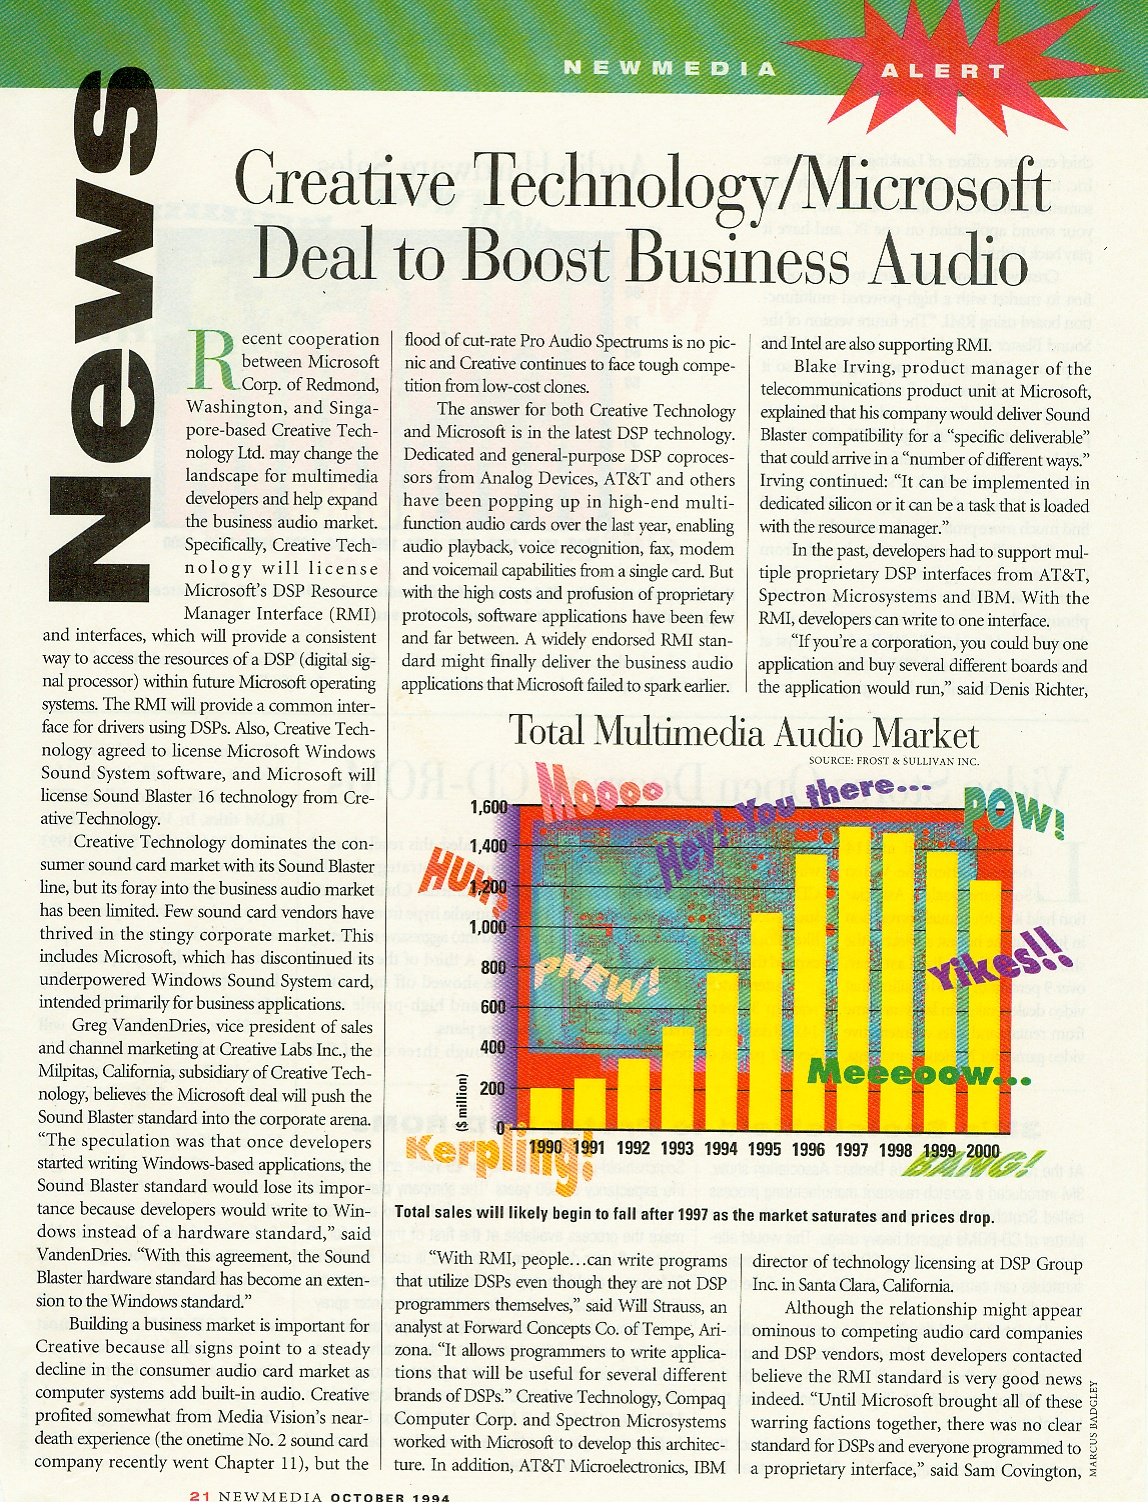 9410 REVENUE GRAPHS NM ARTICLE